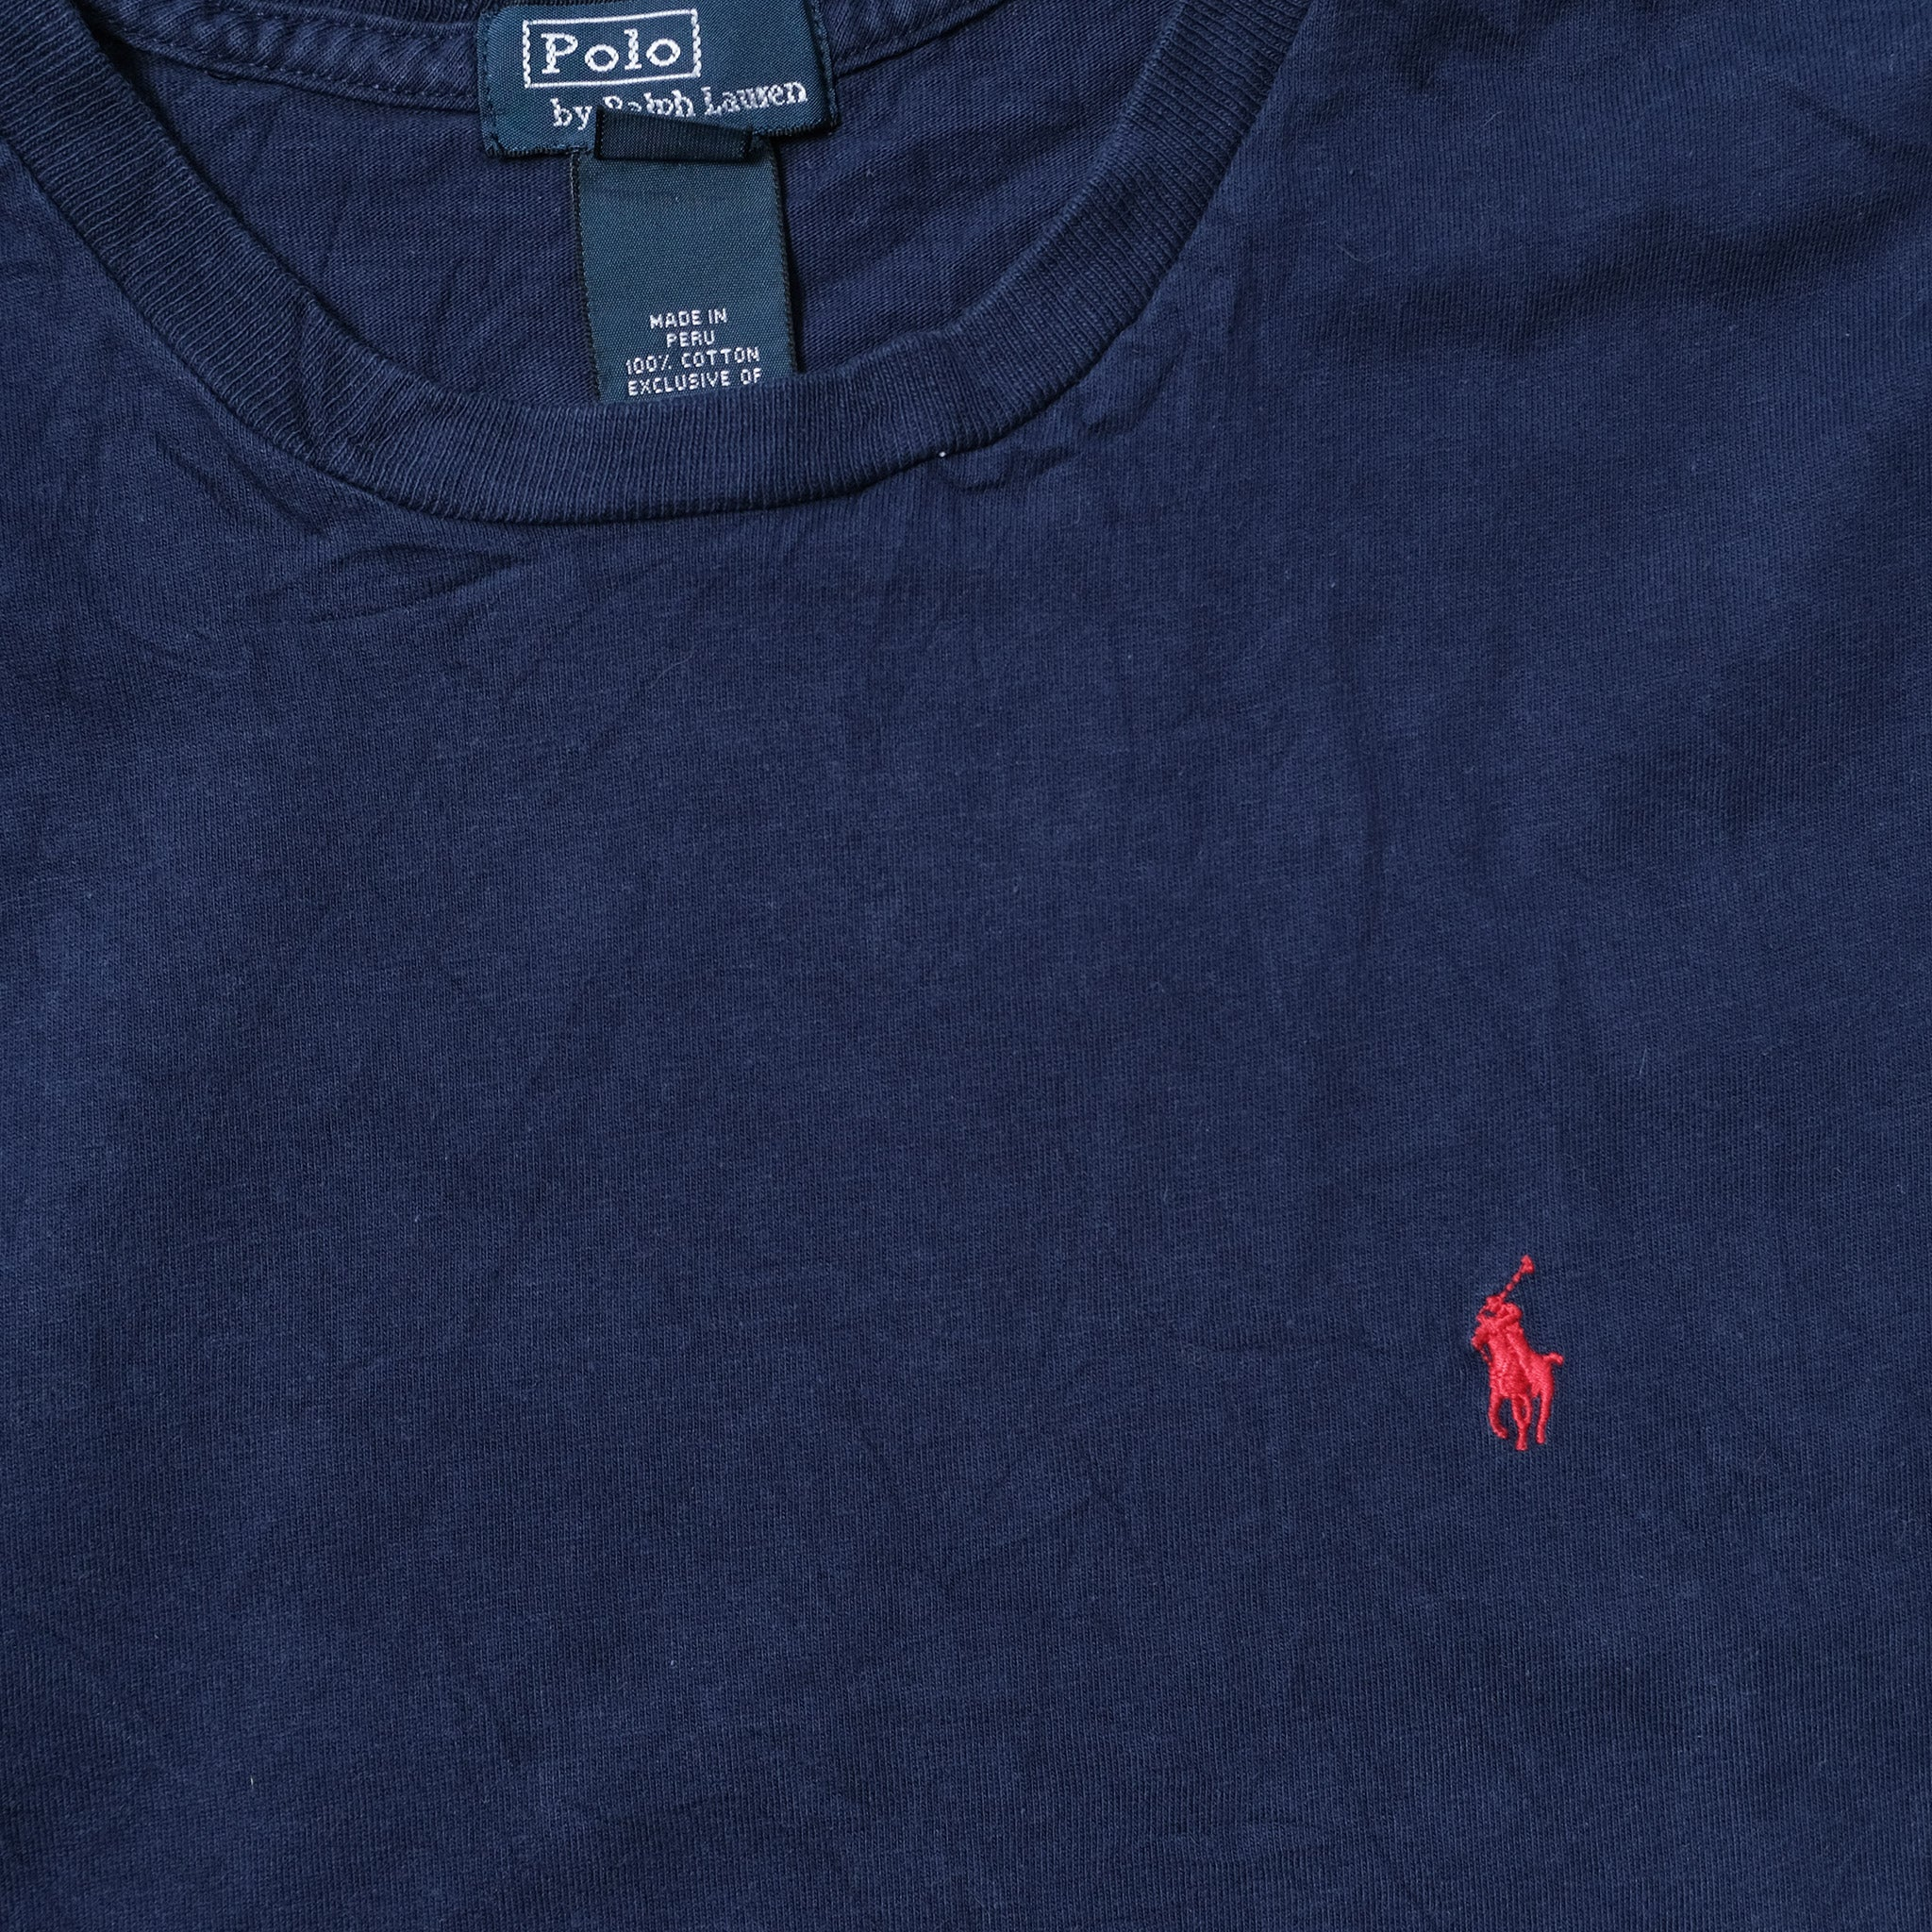 Vintage Polo Ralph Lauren T-Shirt XS / Small